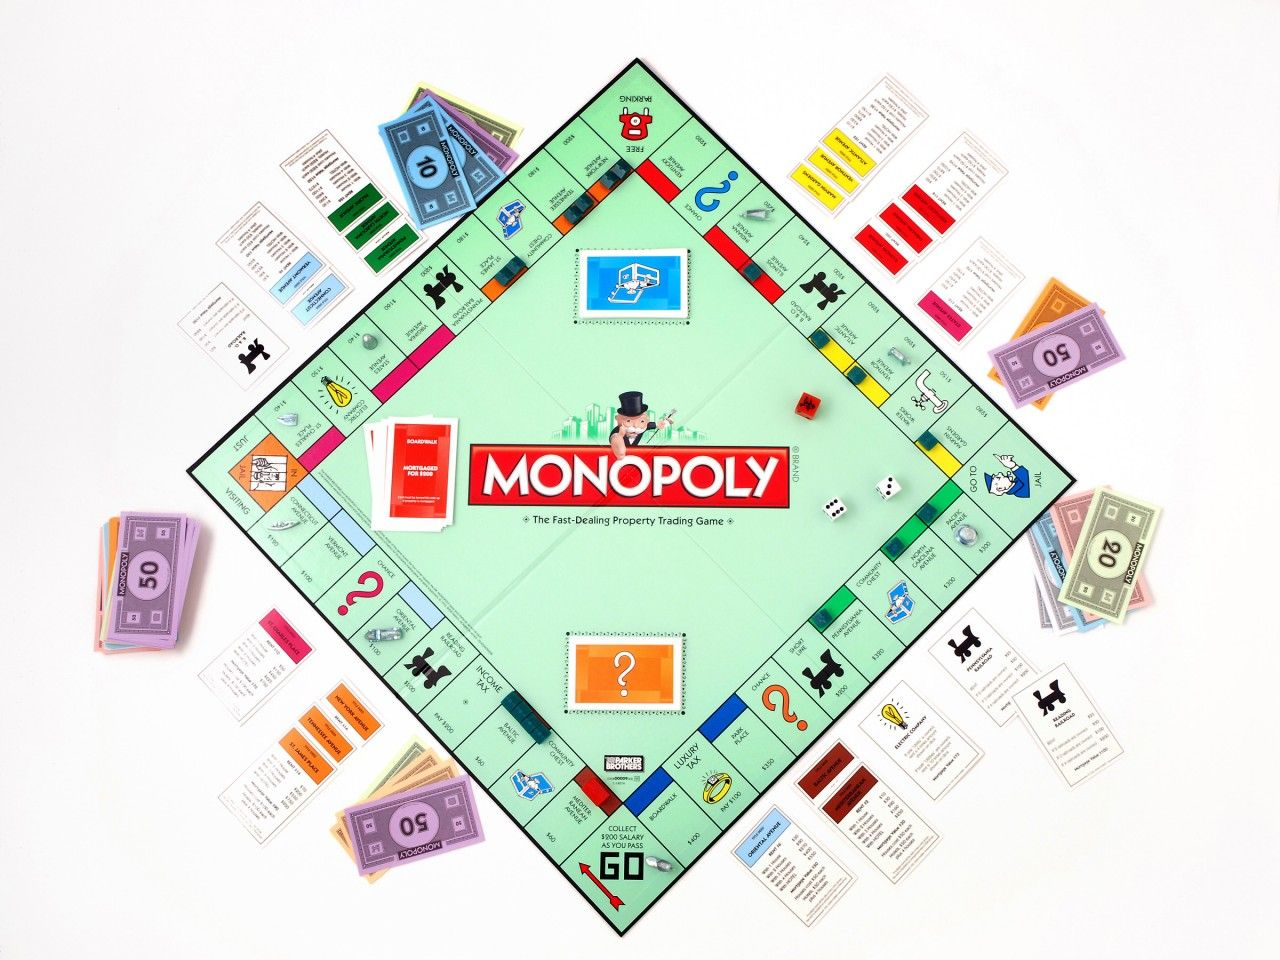 The longest Monopoly game played in a bathtub lasted 99 hours ...